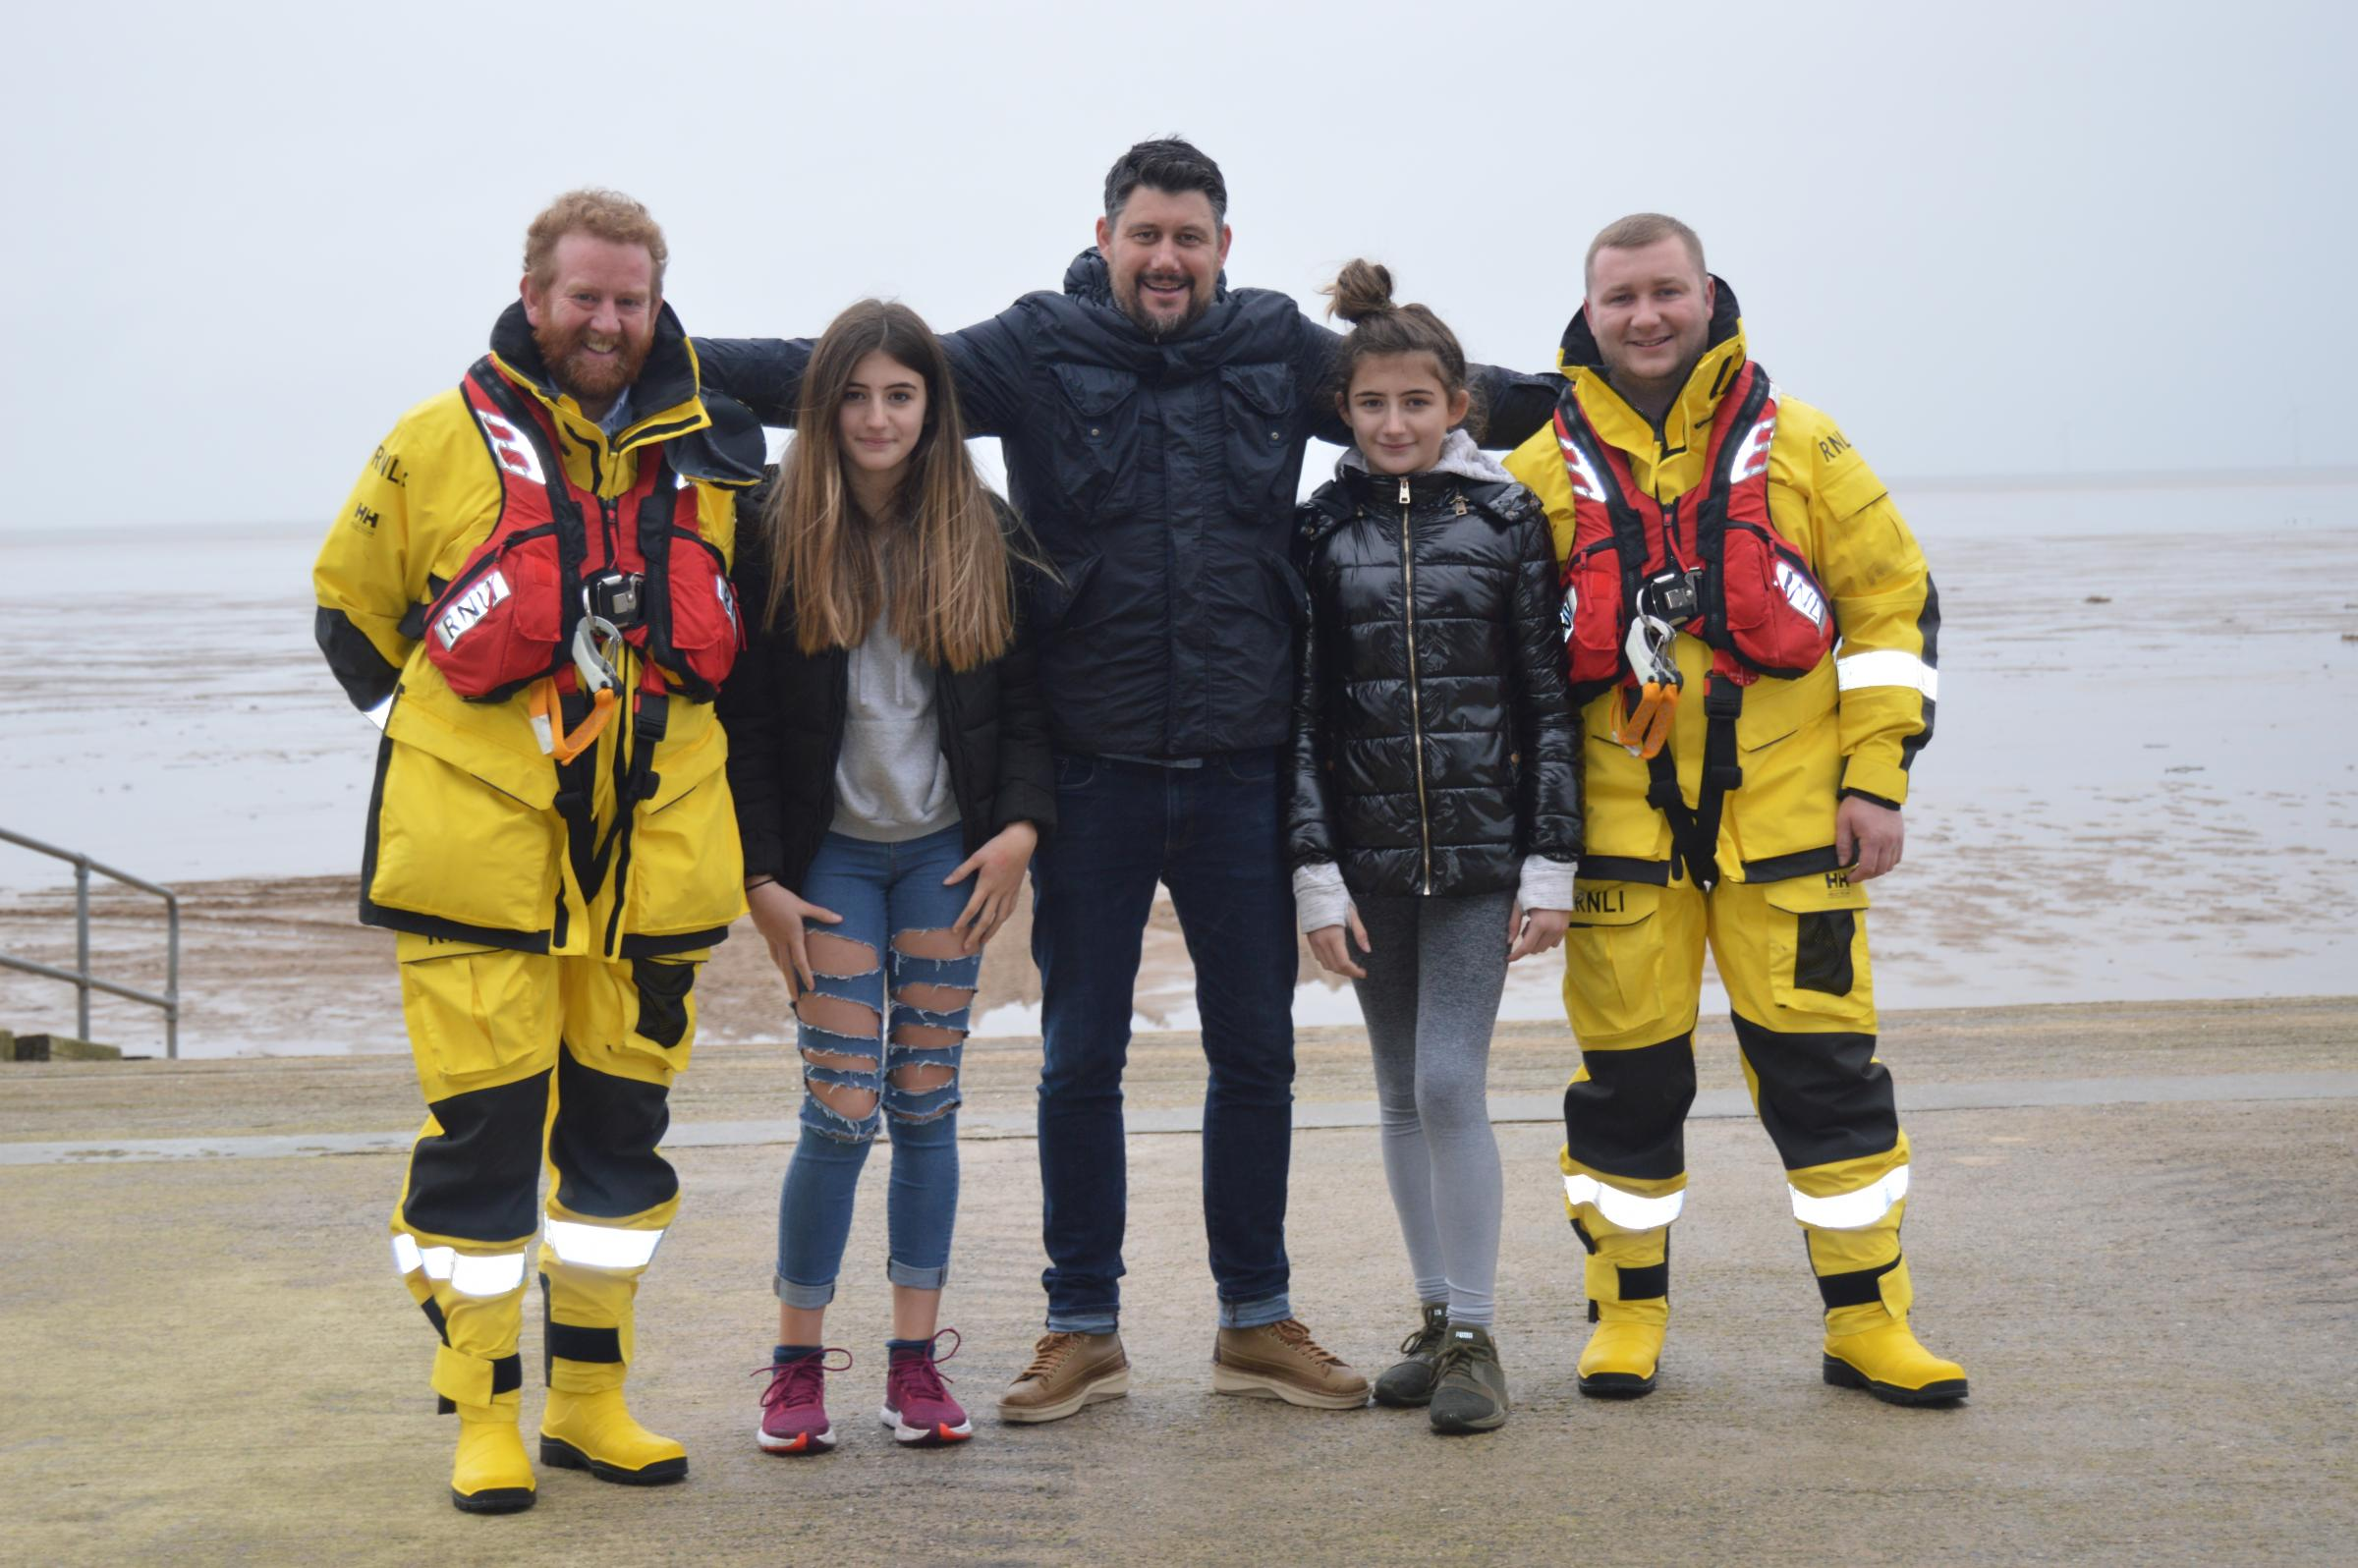 Ellesmere Port family show support for RNLI charity which saved their twin daughters' lives